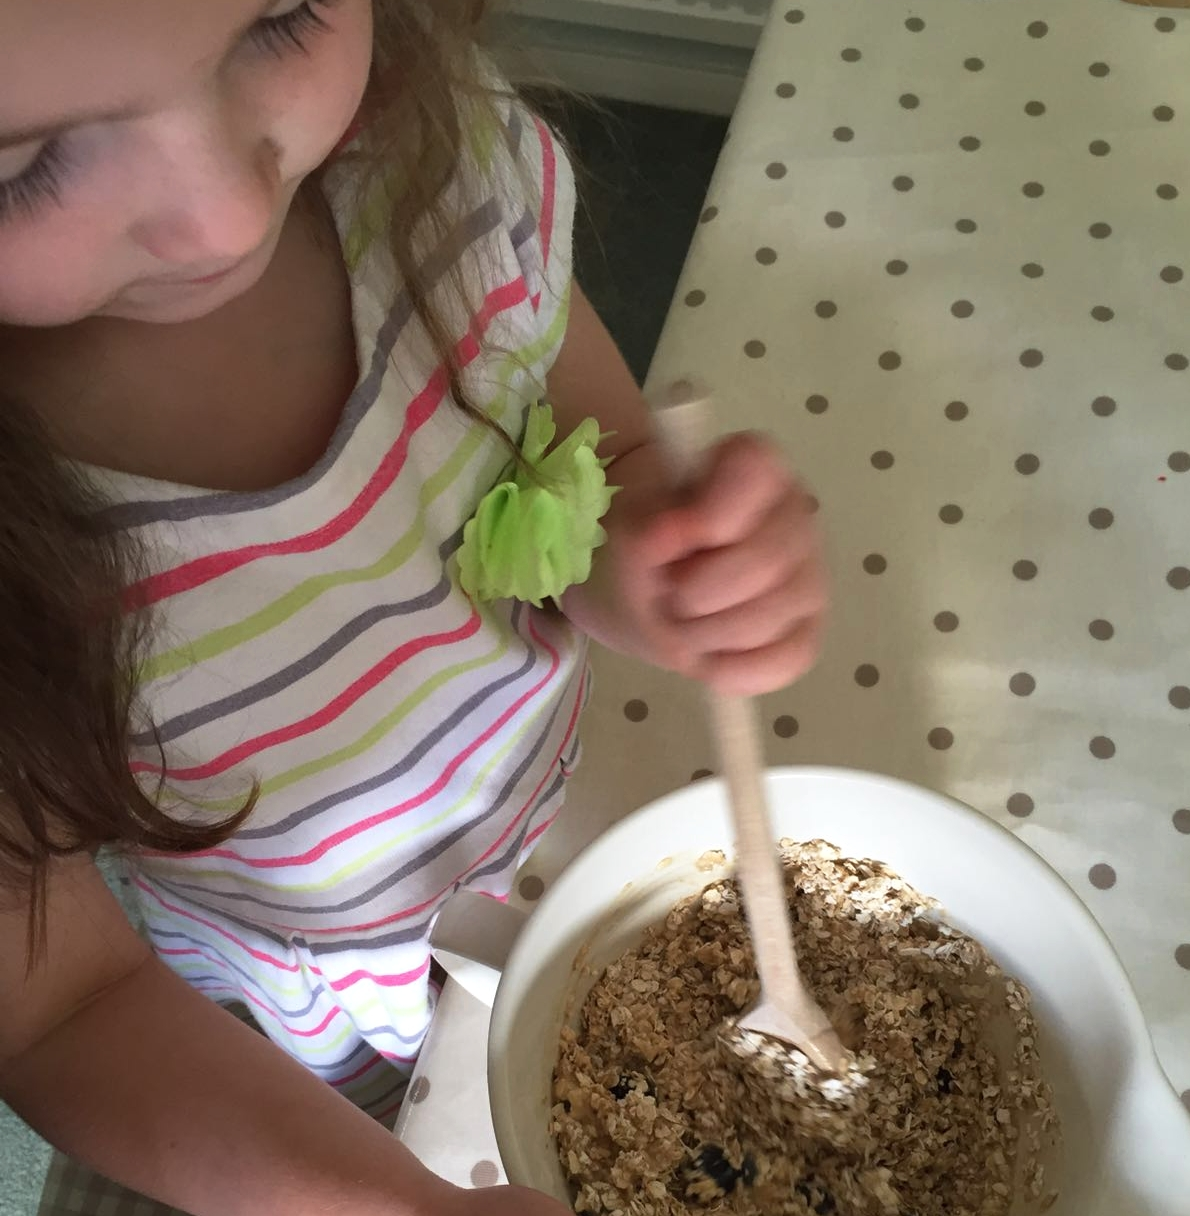 Mixing in the the oats and blueberries